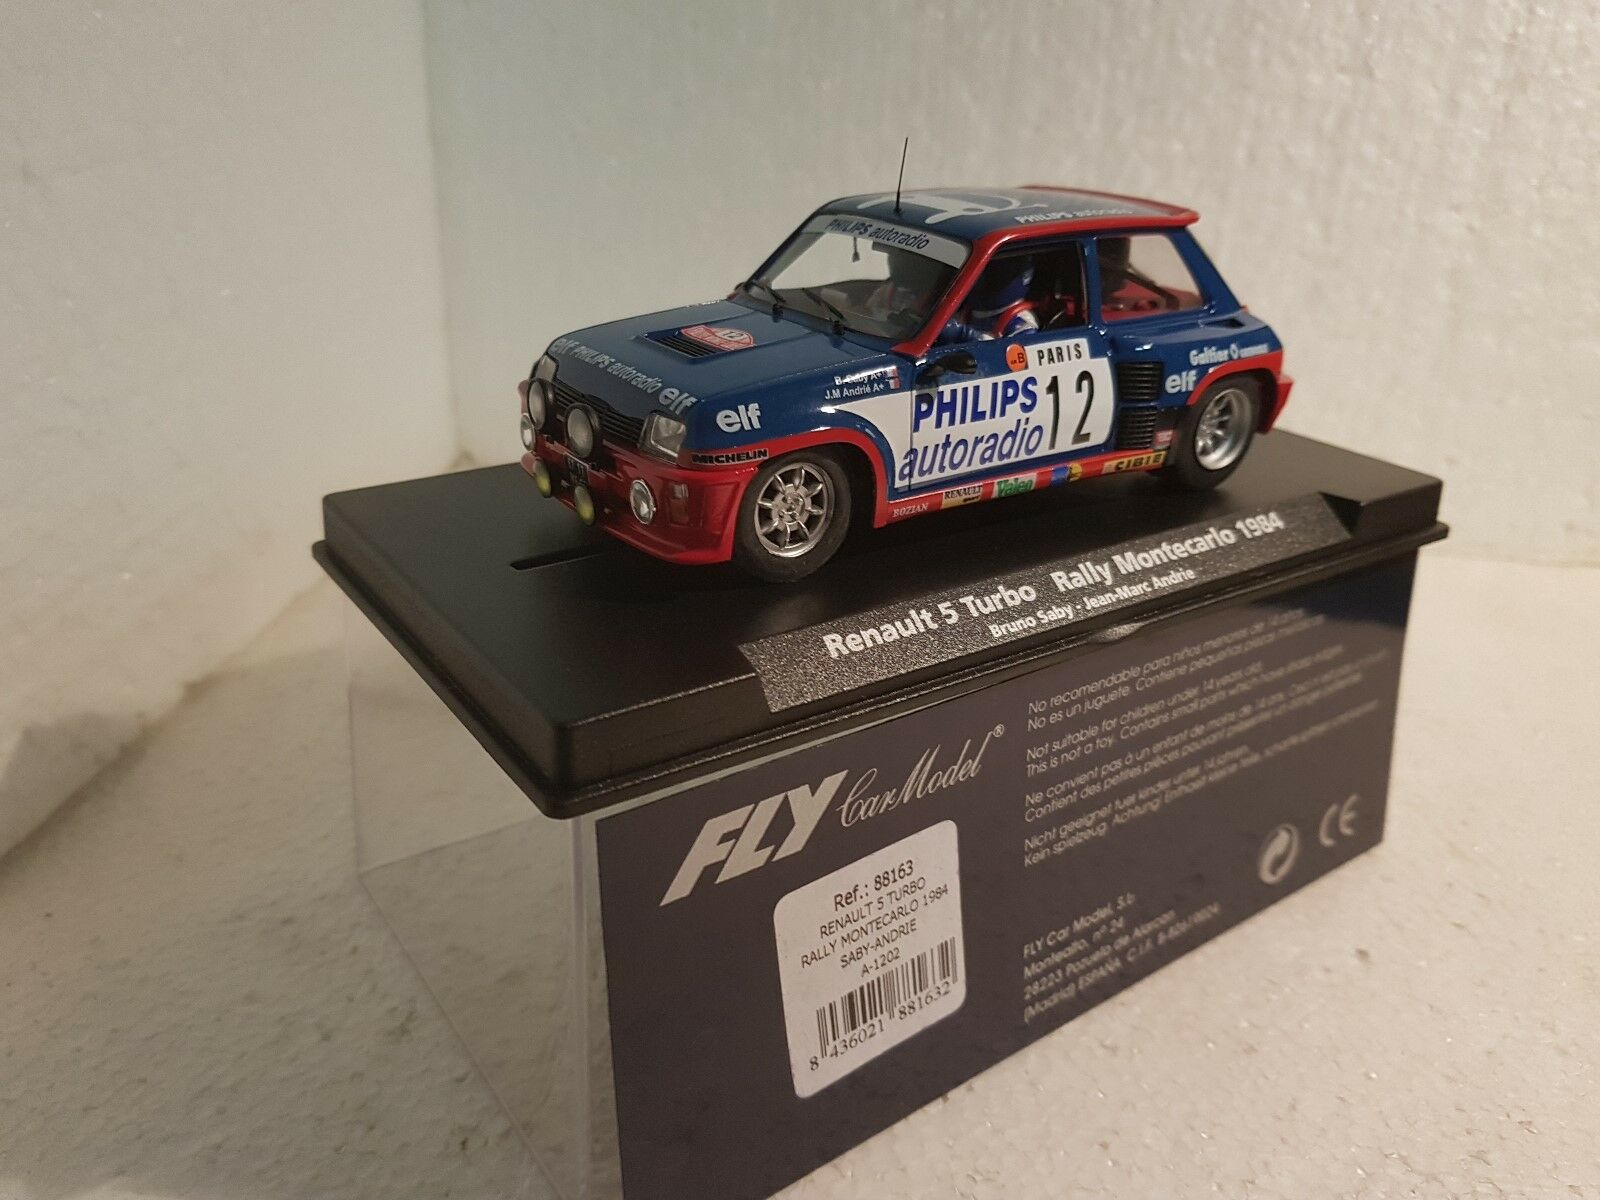 Qq 88163 A-1202 FLY RENAULT 5 TURBO RALLY MONTECARLO 1984  BRUNO SABY- JM ANDRIE